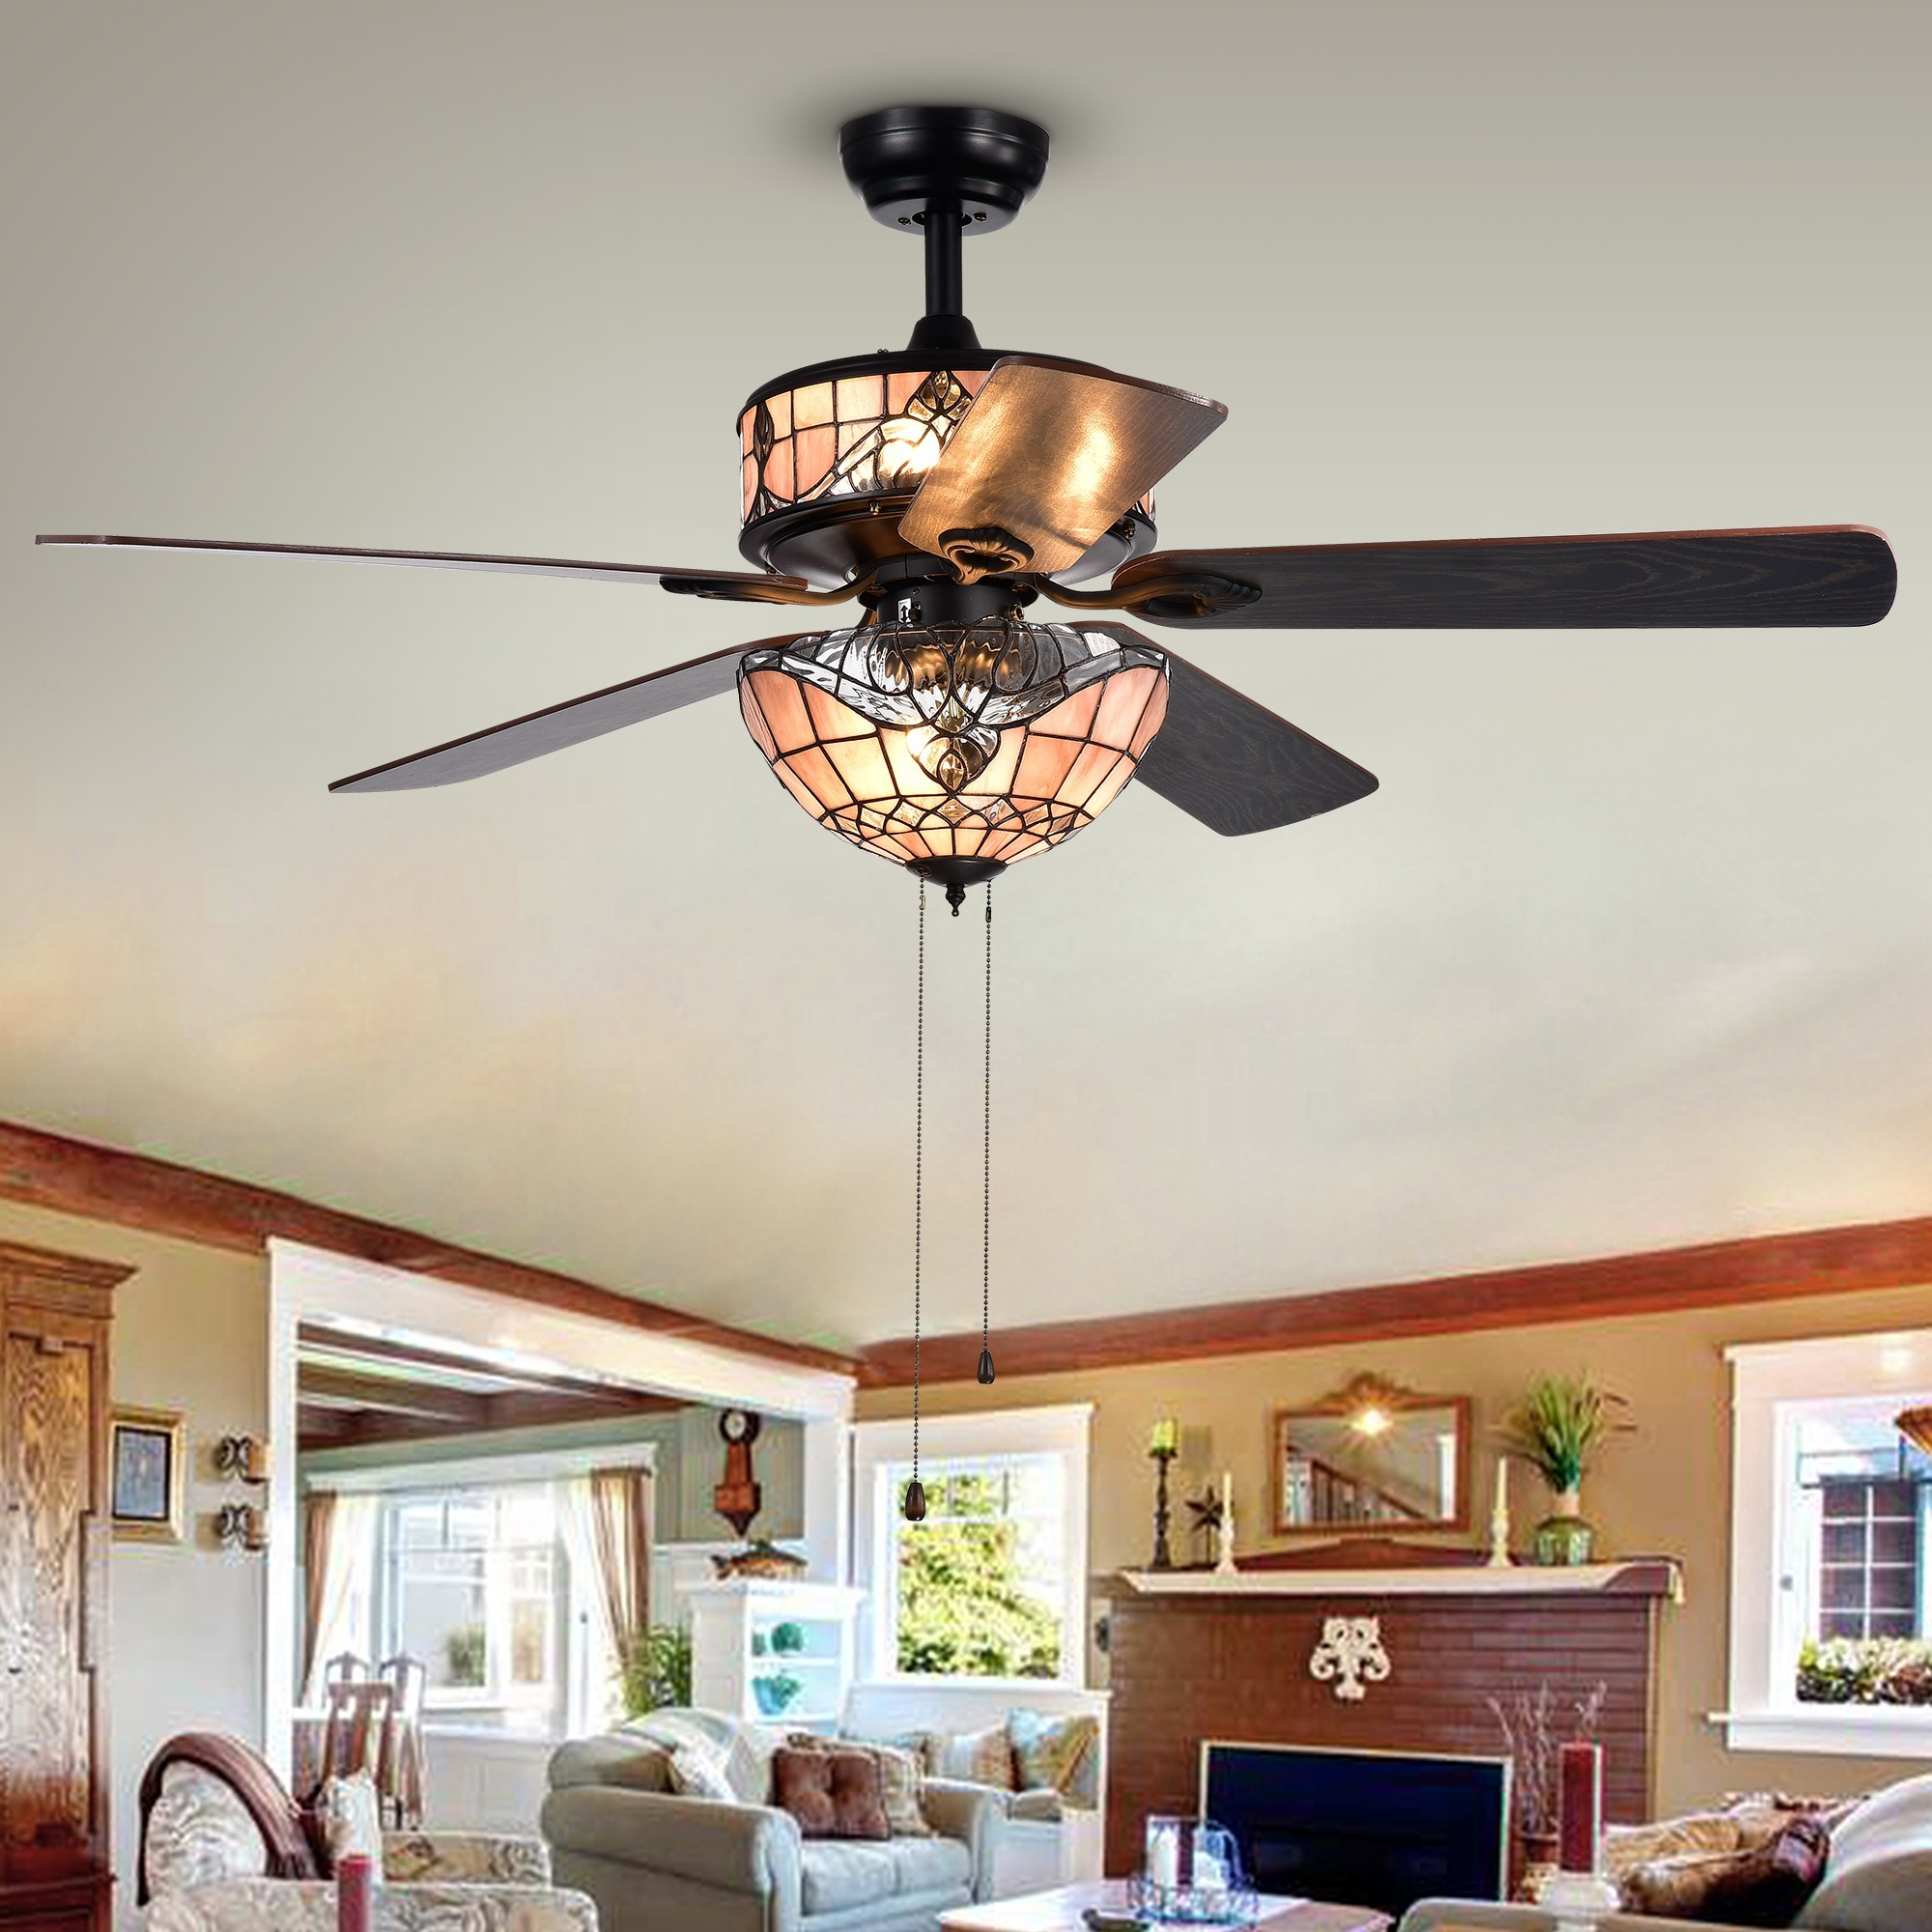 of fan ceiling new cat breeze reviewsblack product picture brown black